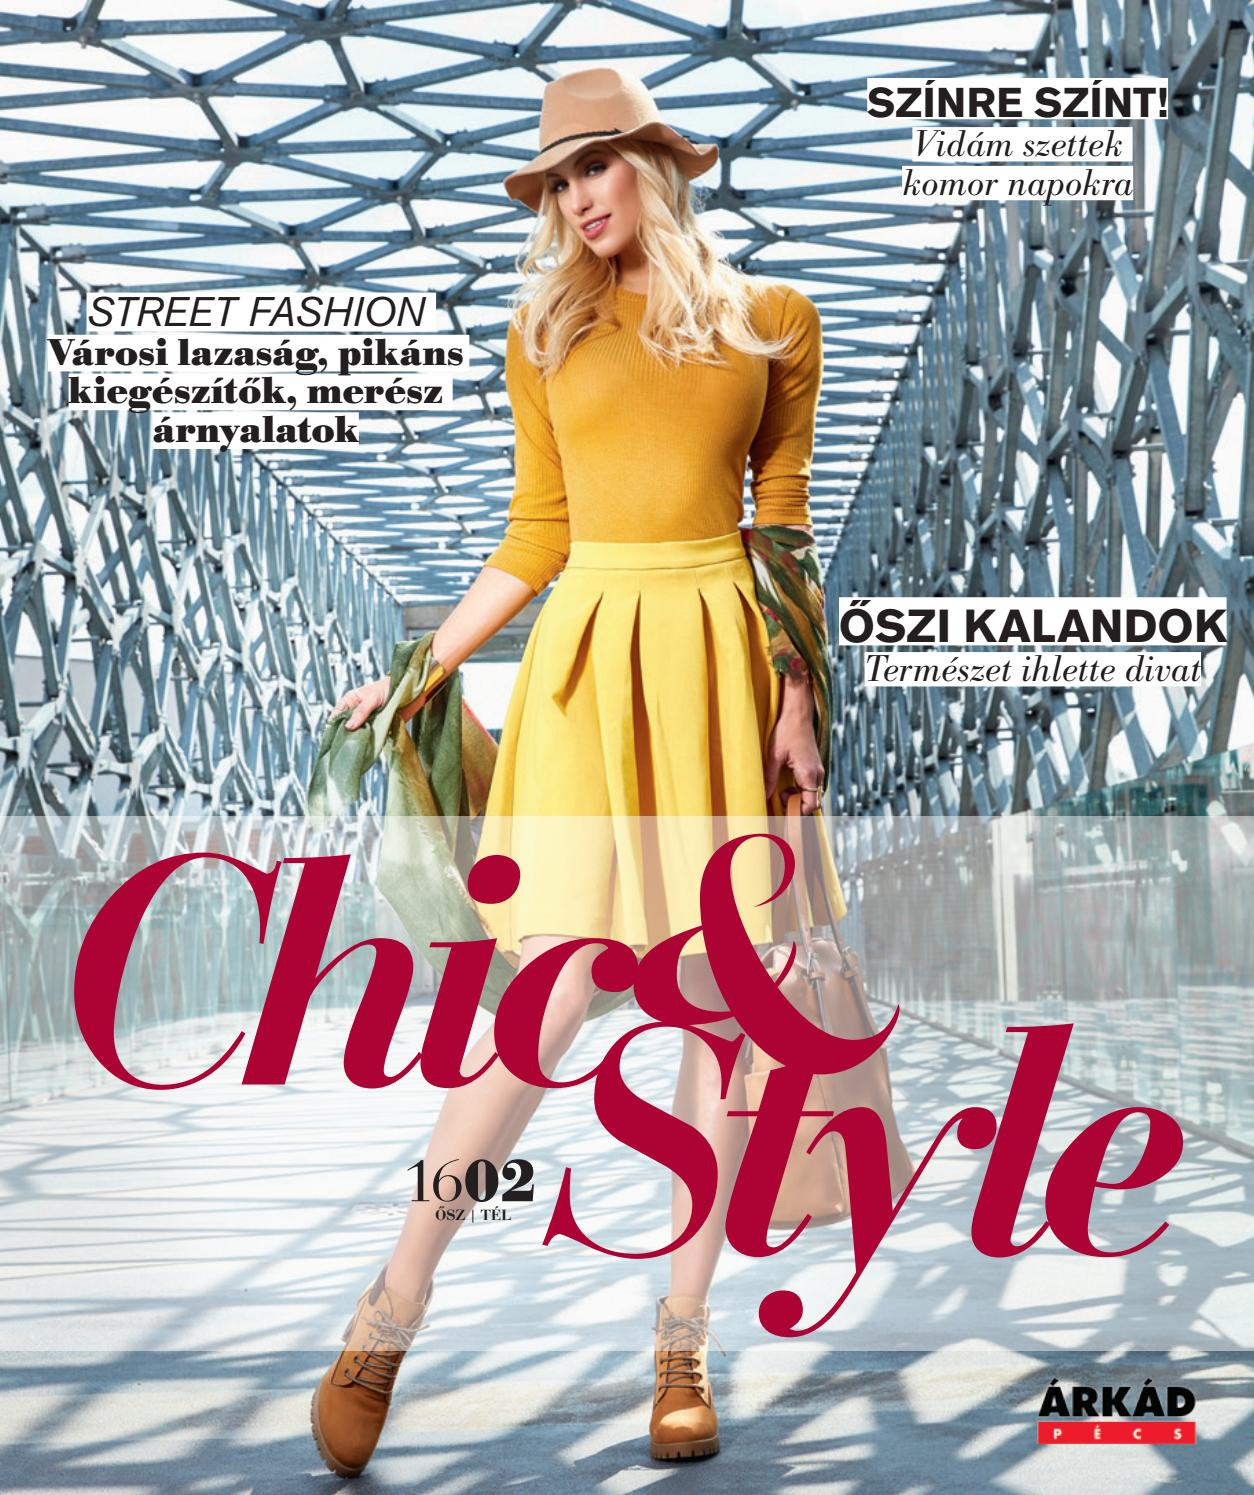 Chic Style House 2016 2 by Company Info Kft. - issuu 0ec35af5a4